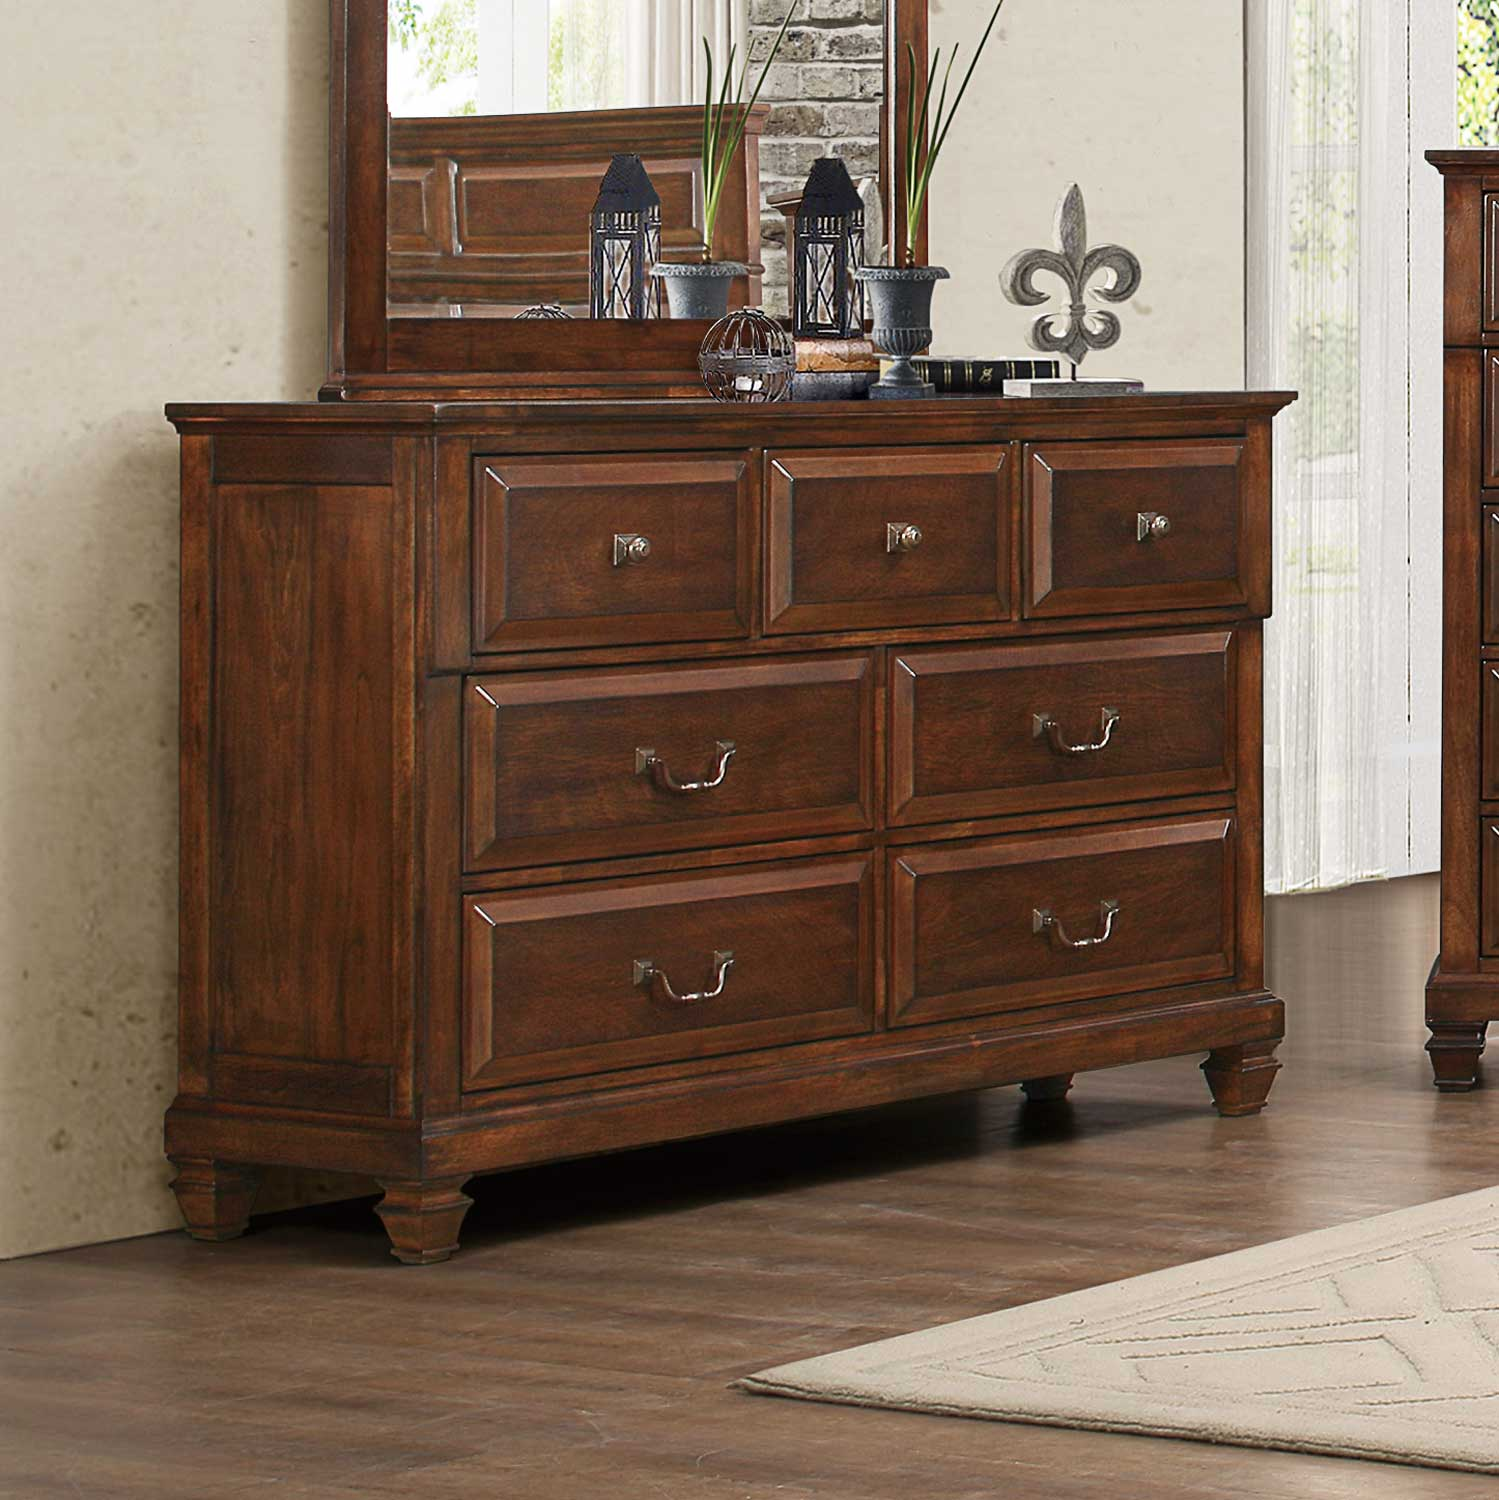 Homelegance Bardwell Dresser - Brown Cherry